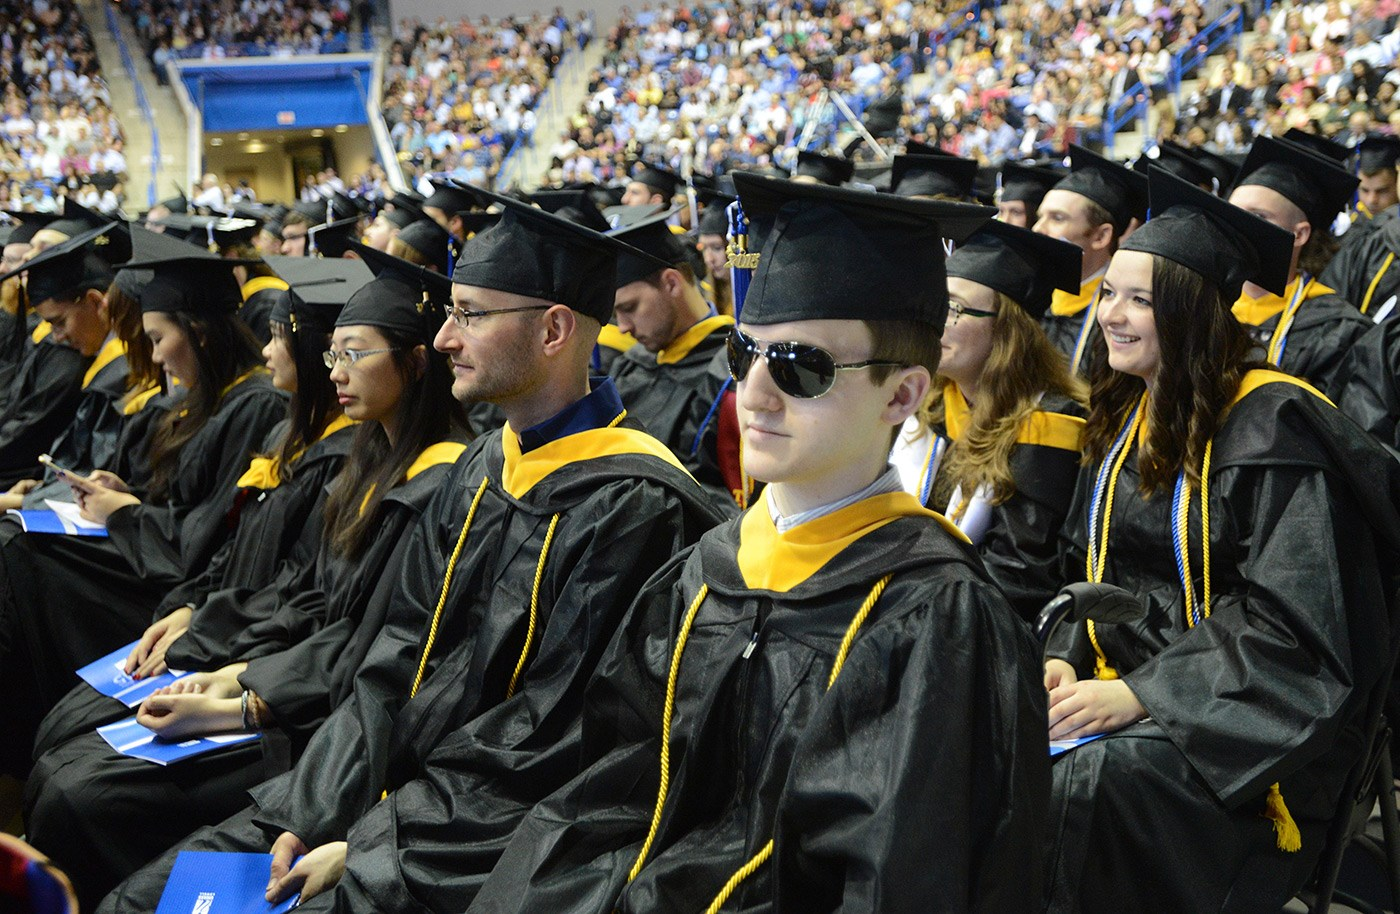 honors-commencement-male-sunglasses